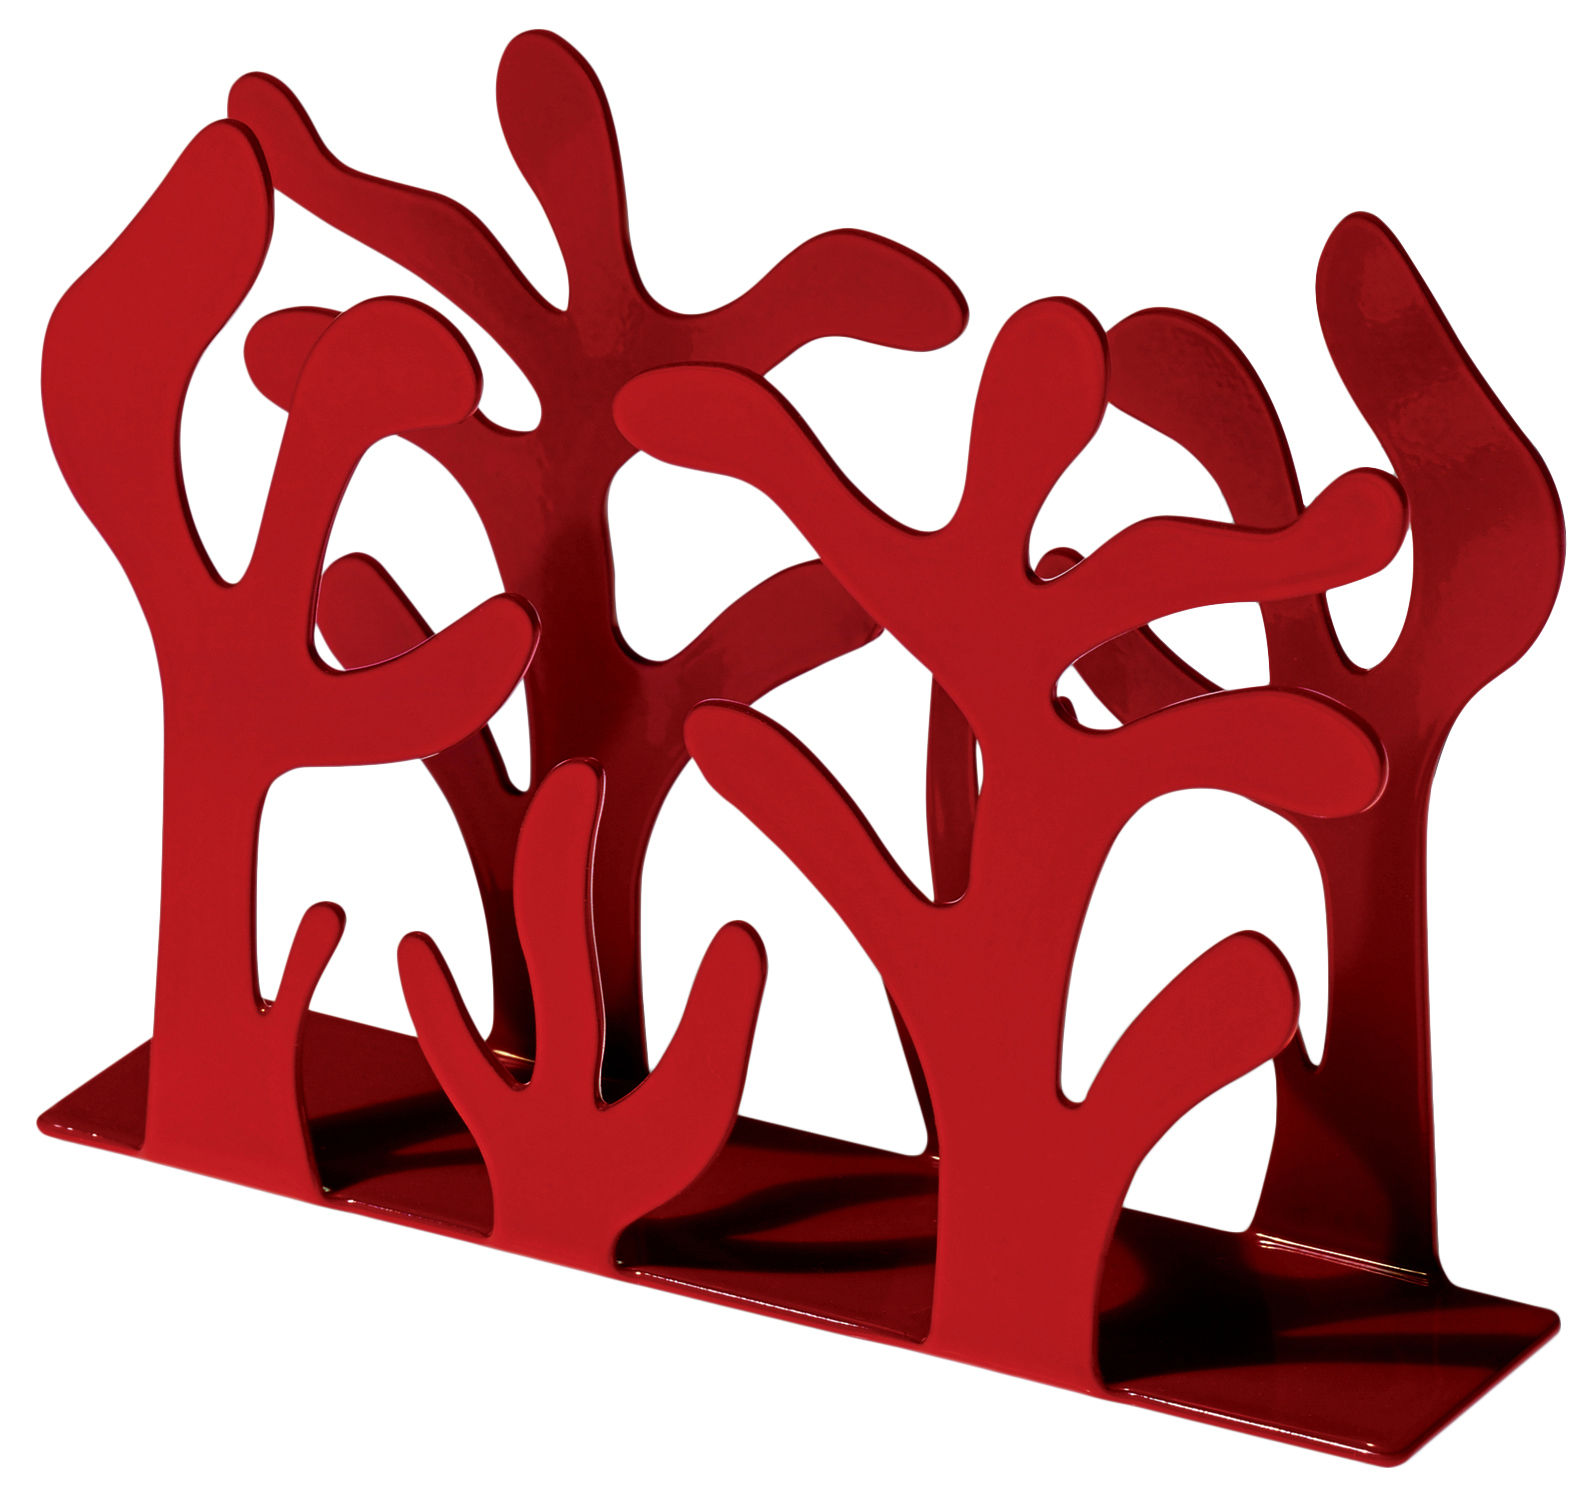 Kitchenware - Cool Kitchen Gadgets - Mediterraneo Napkin holder by Alessi - Red - Steel